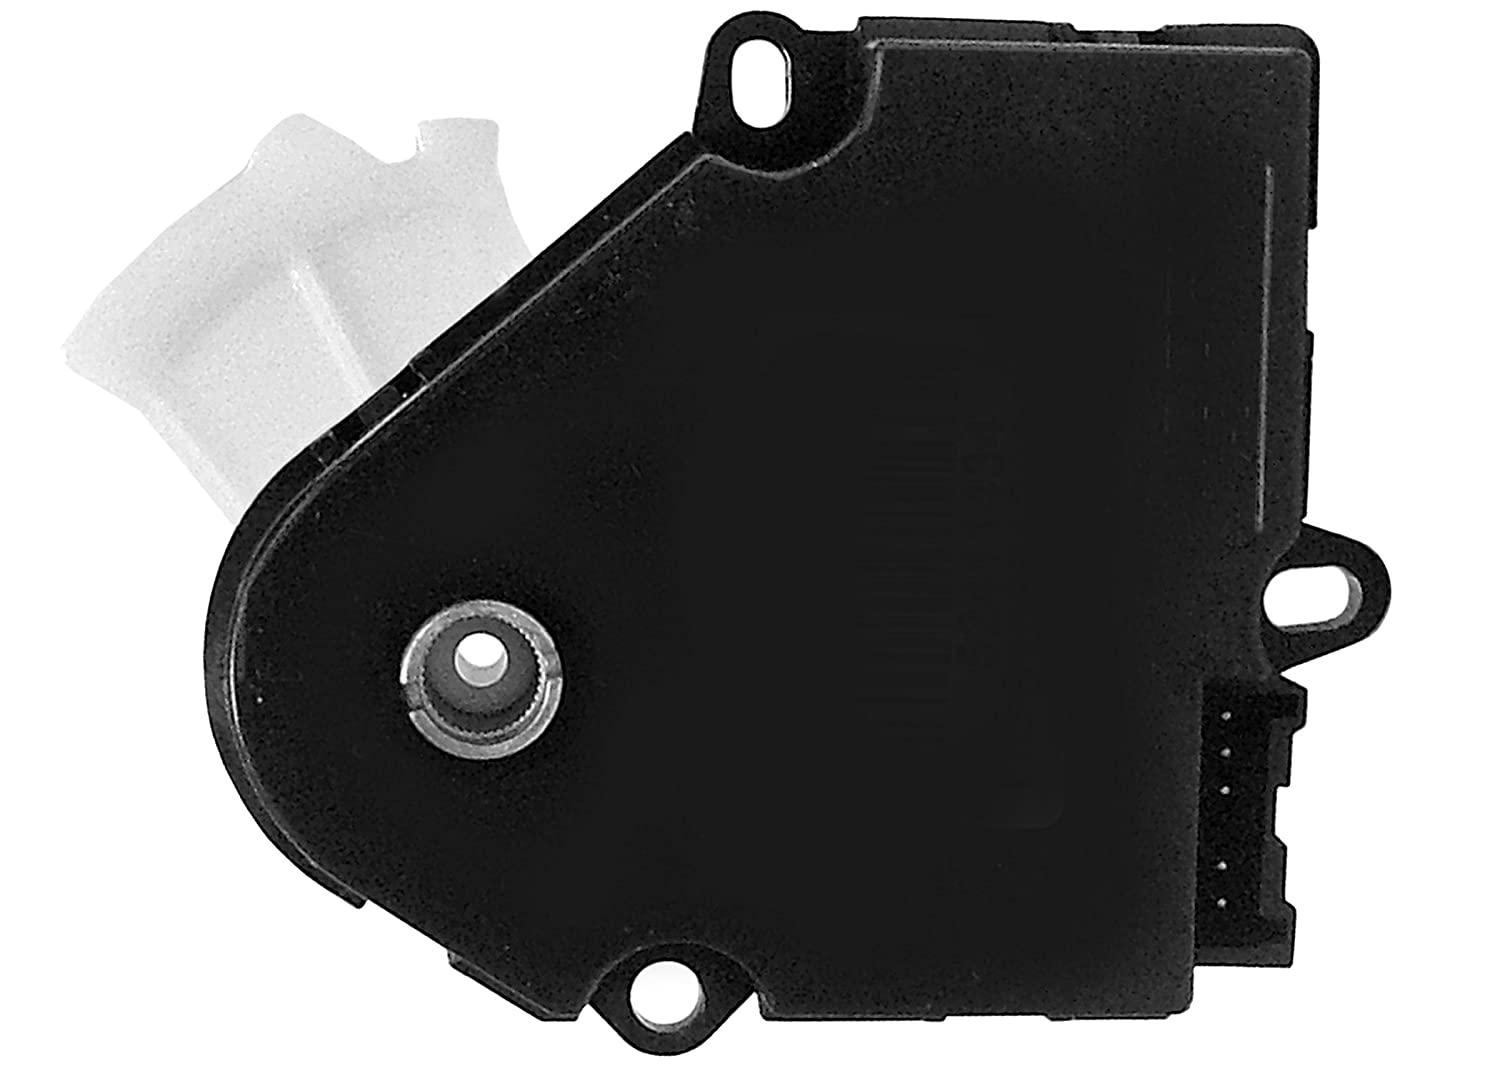 Acdelco 15 73596 Gm Original Equipment Heating And Air Valve Actuator Chevy Blazer Wiring Diagram Conditioning Panel Mode Door Automotive